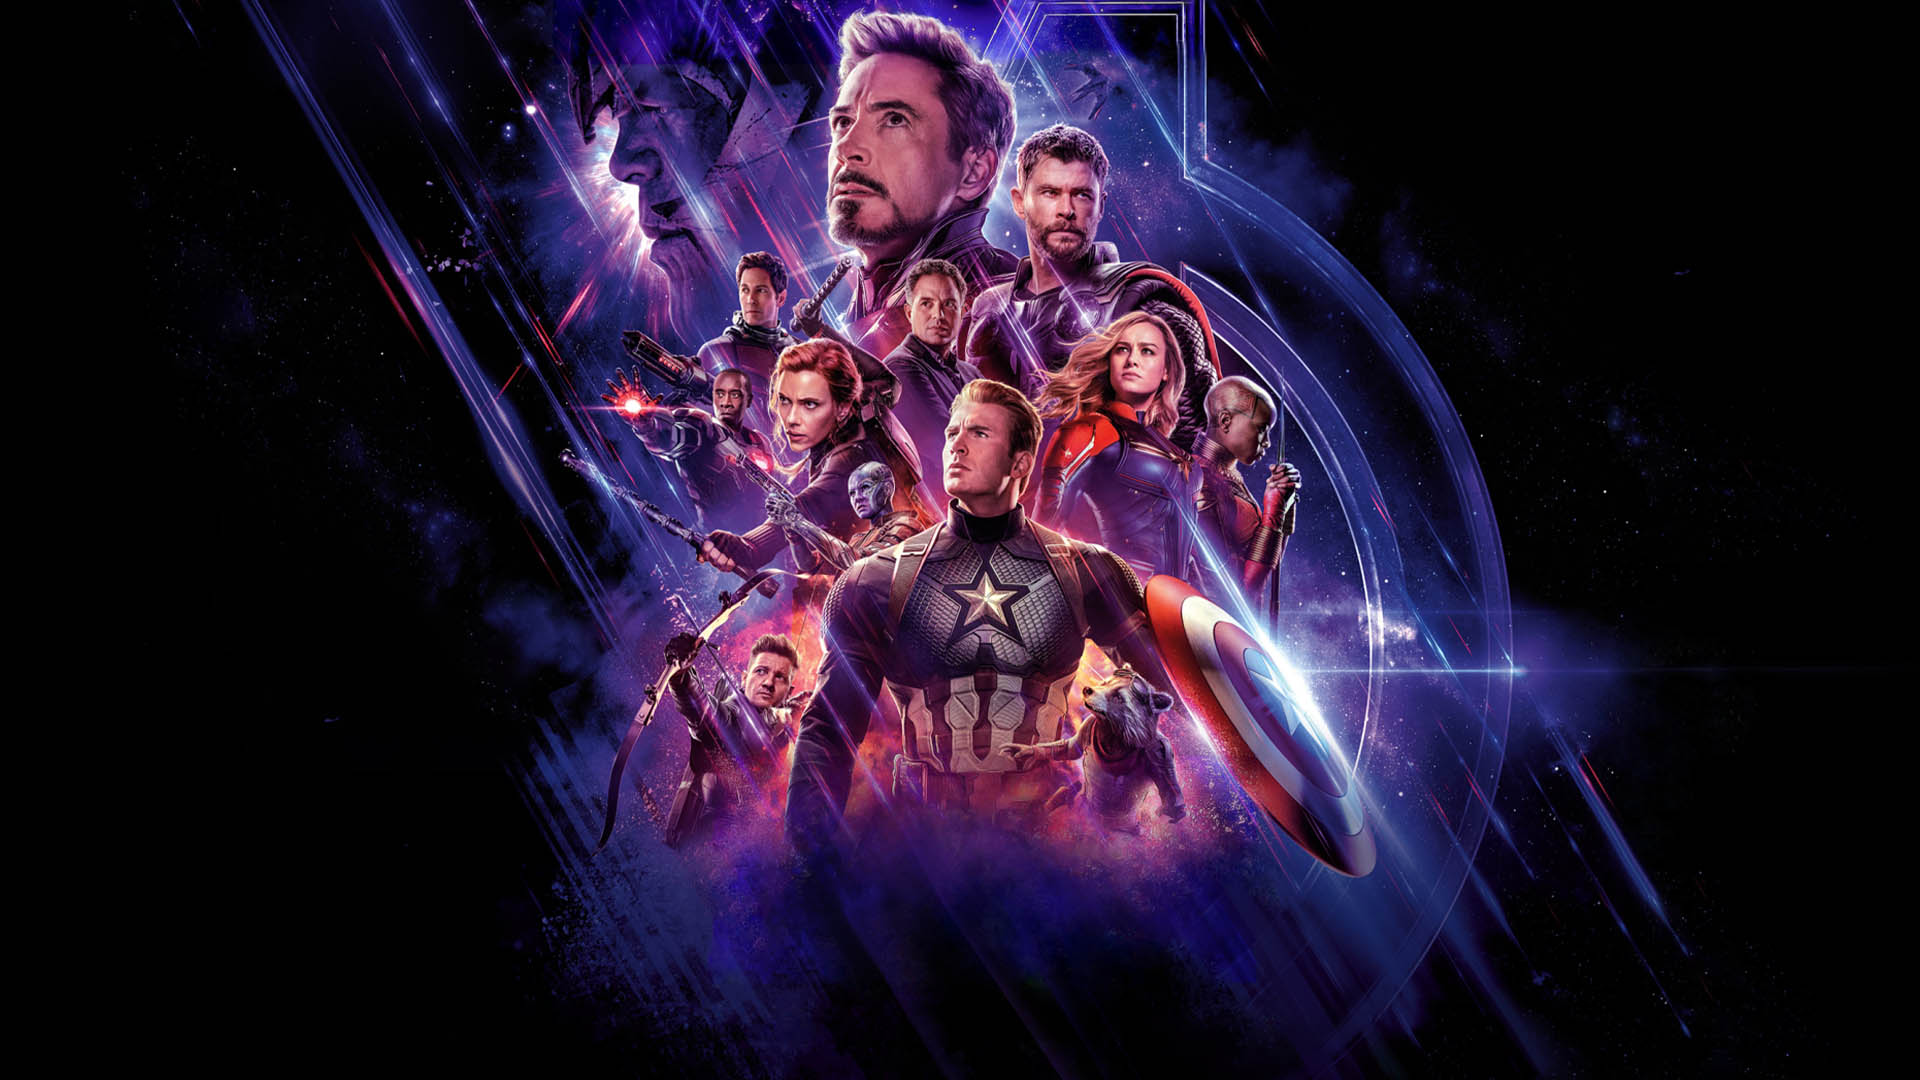 کاور فیلم the avengers end game